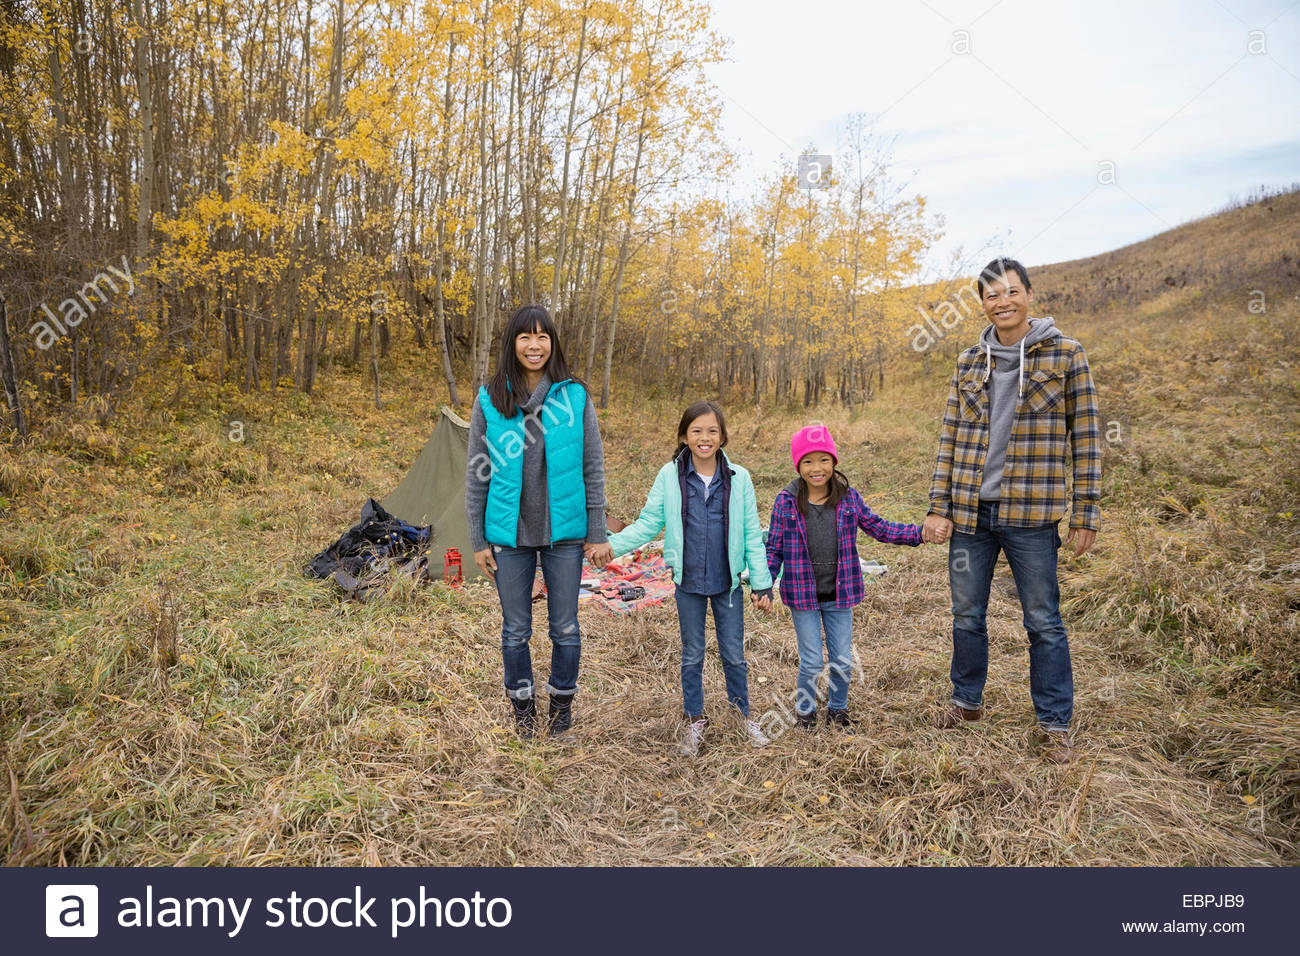 Portrait of family at campsite in rural field - Stock Image